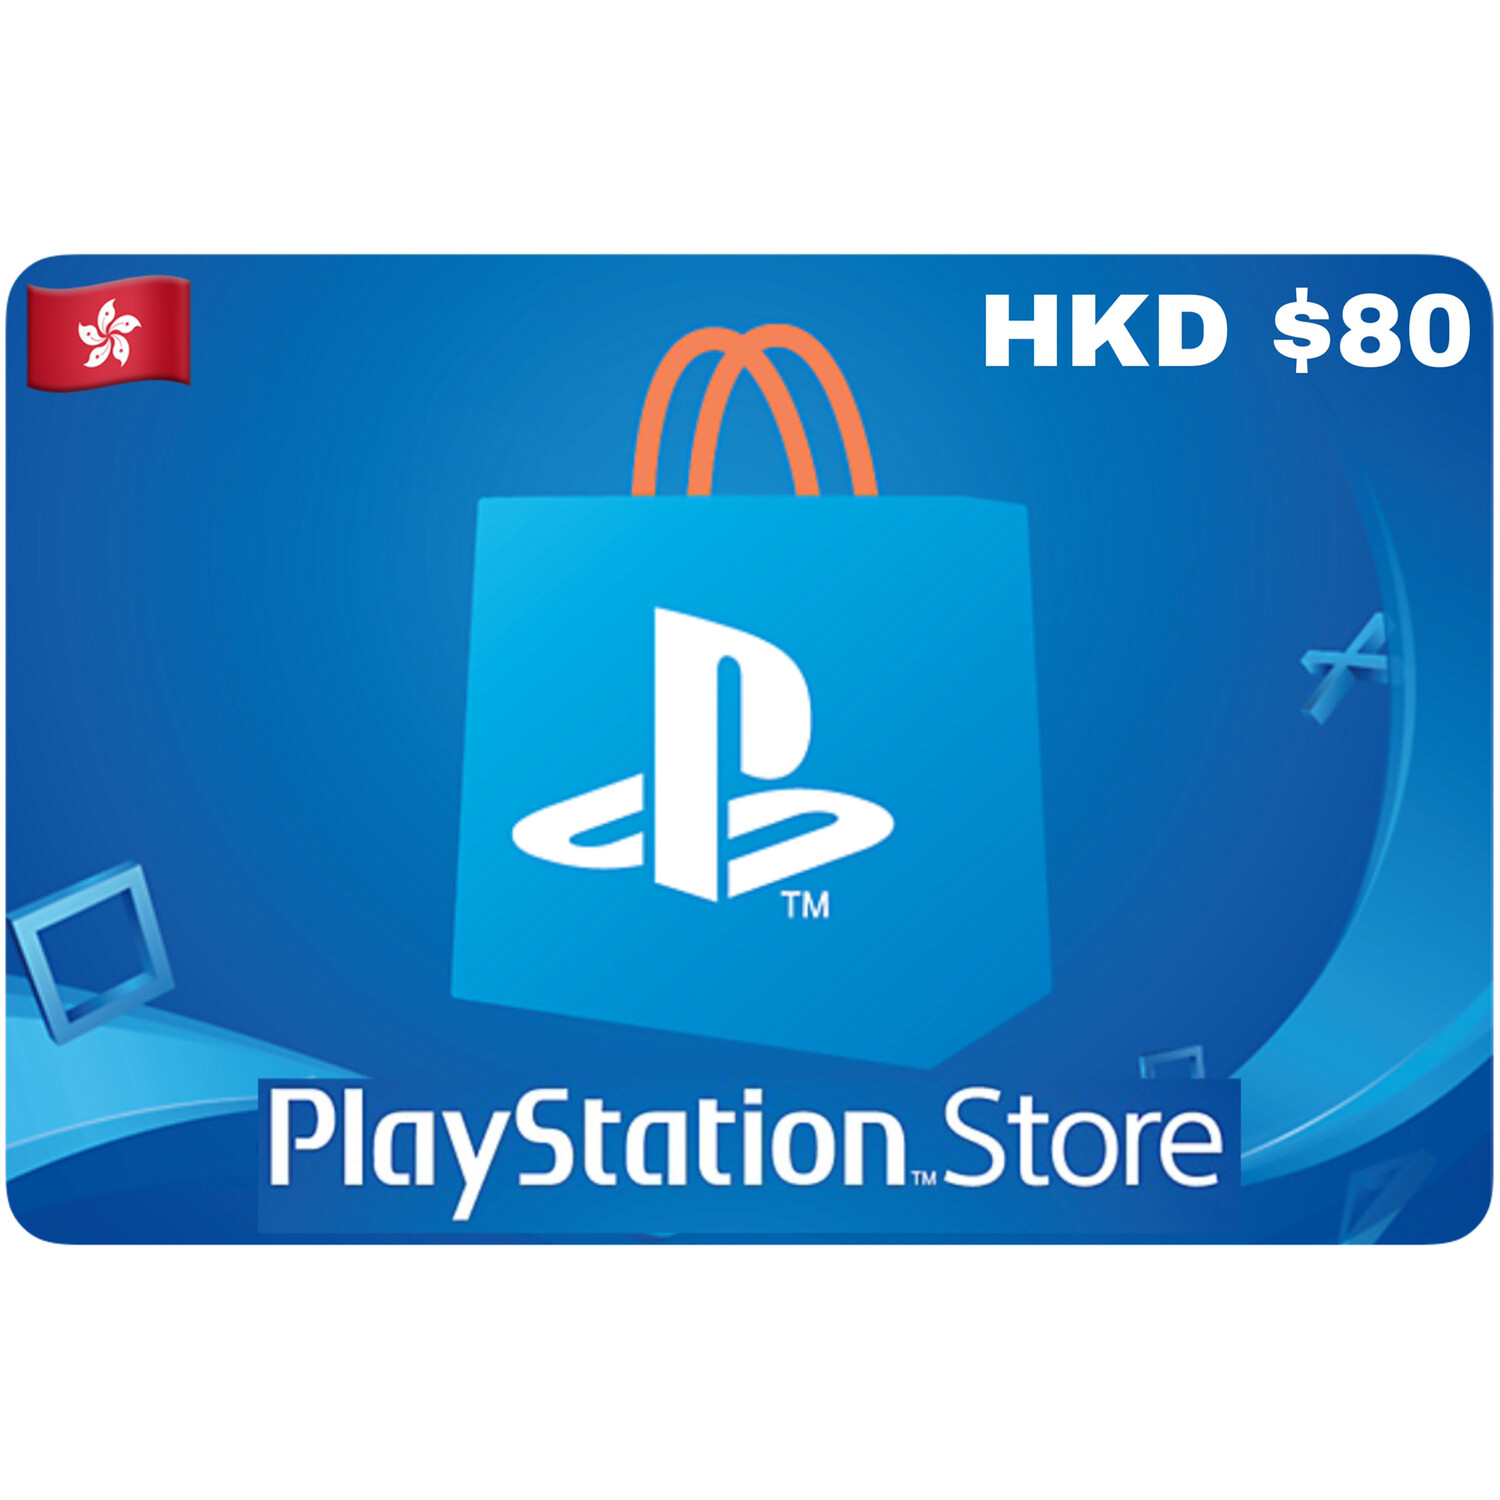 Playstation Store Gift Card Hongkong HKD $80